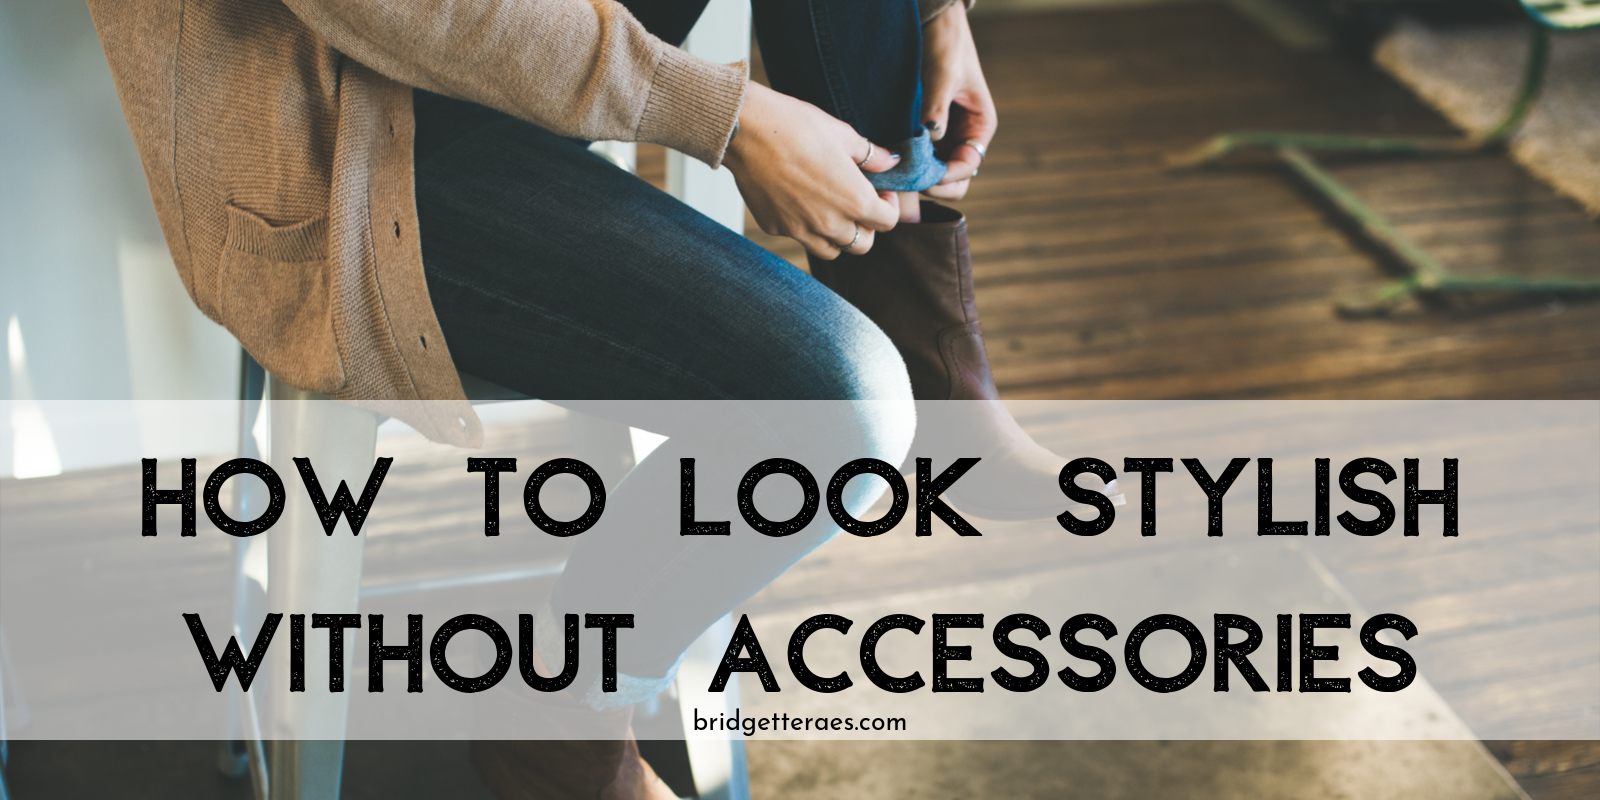 How to Look Stylish Without Accessories